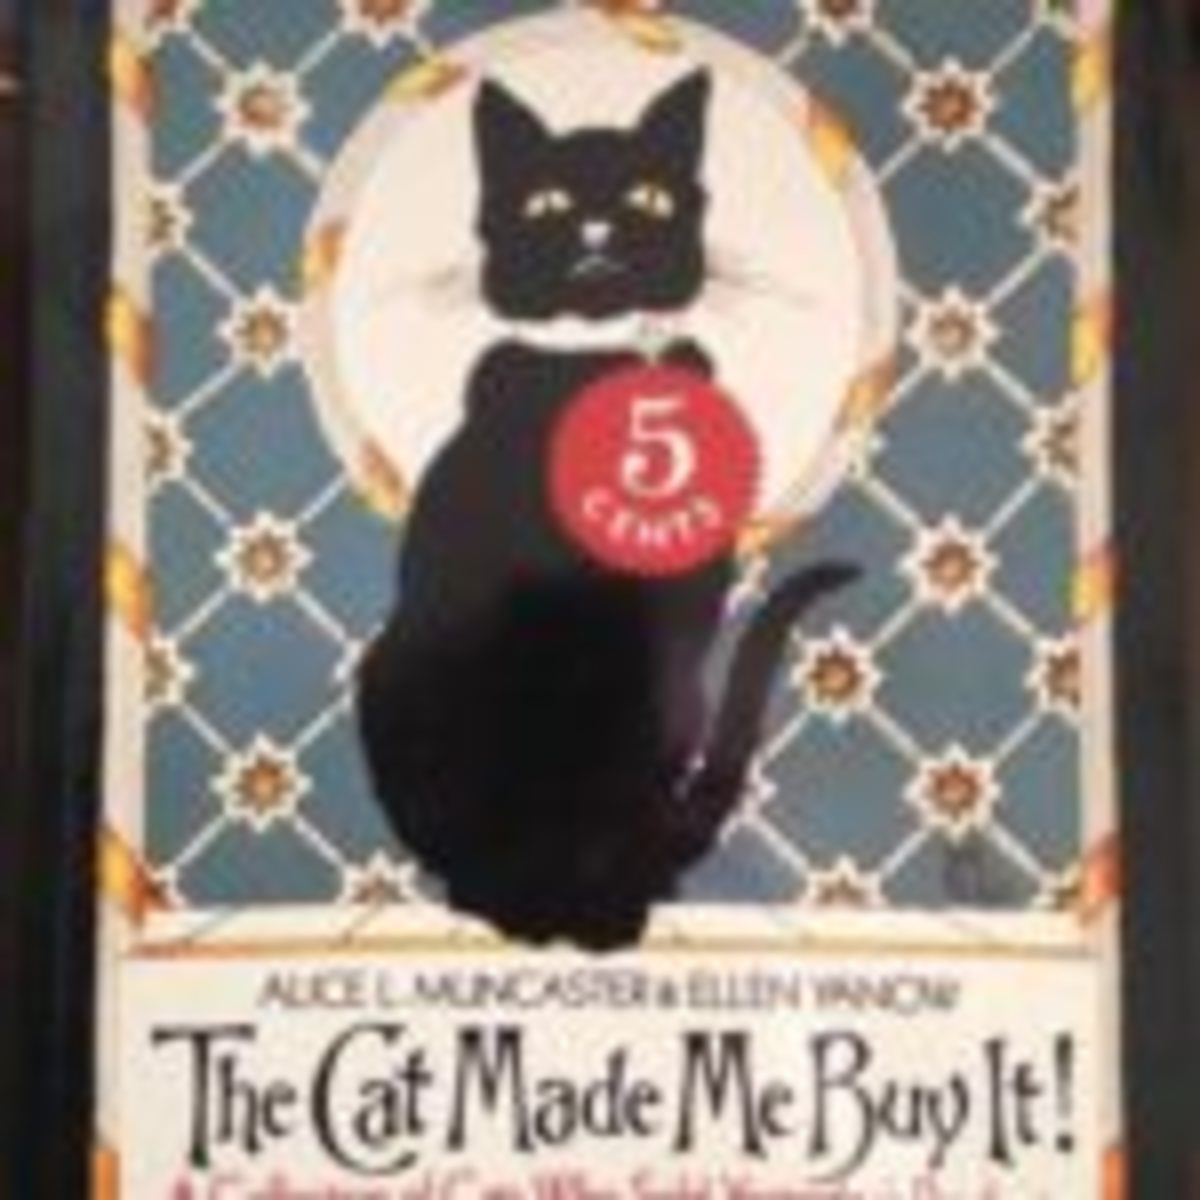 "Margaret Carpenter and Alice Muncaster will be presenting the talk entitled ""The Cat Made Me Buy It!"" on Thursday, July 25 at the Antique Advertising Association of America's annual convention."